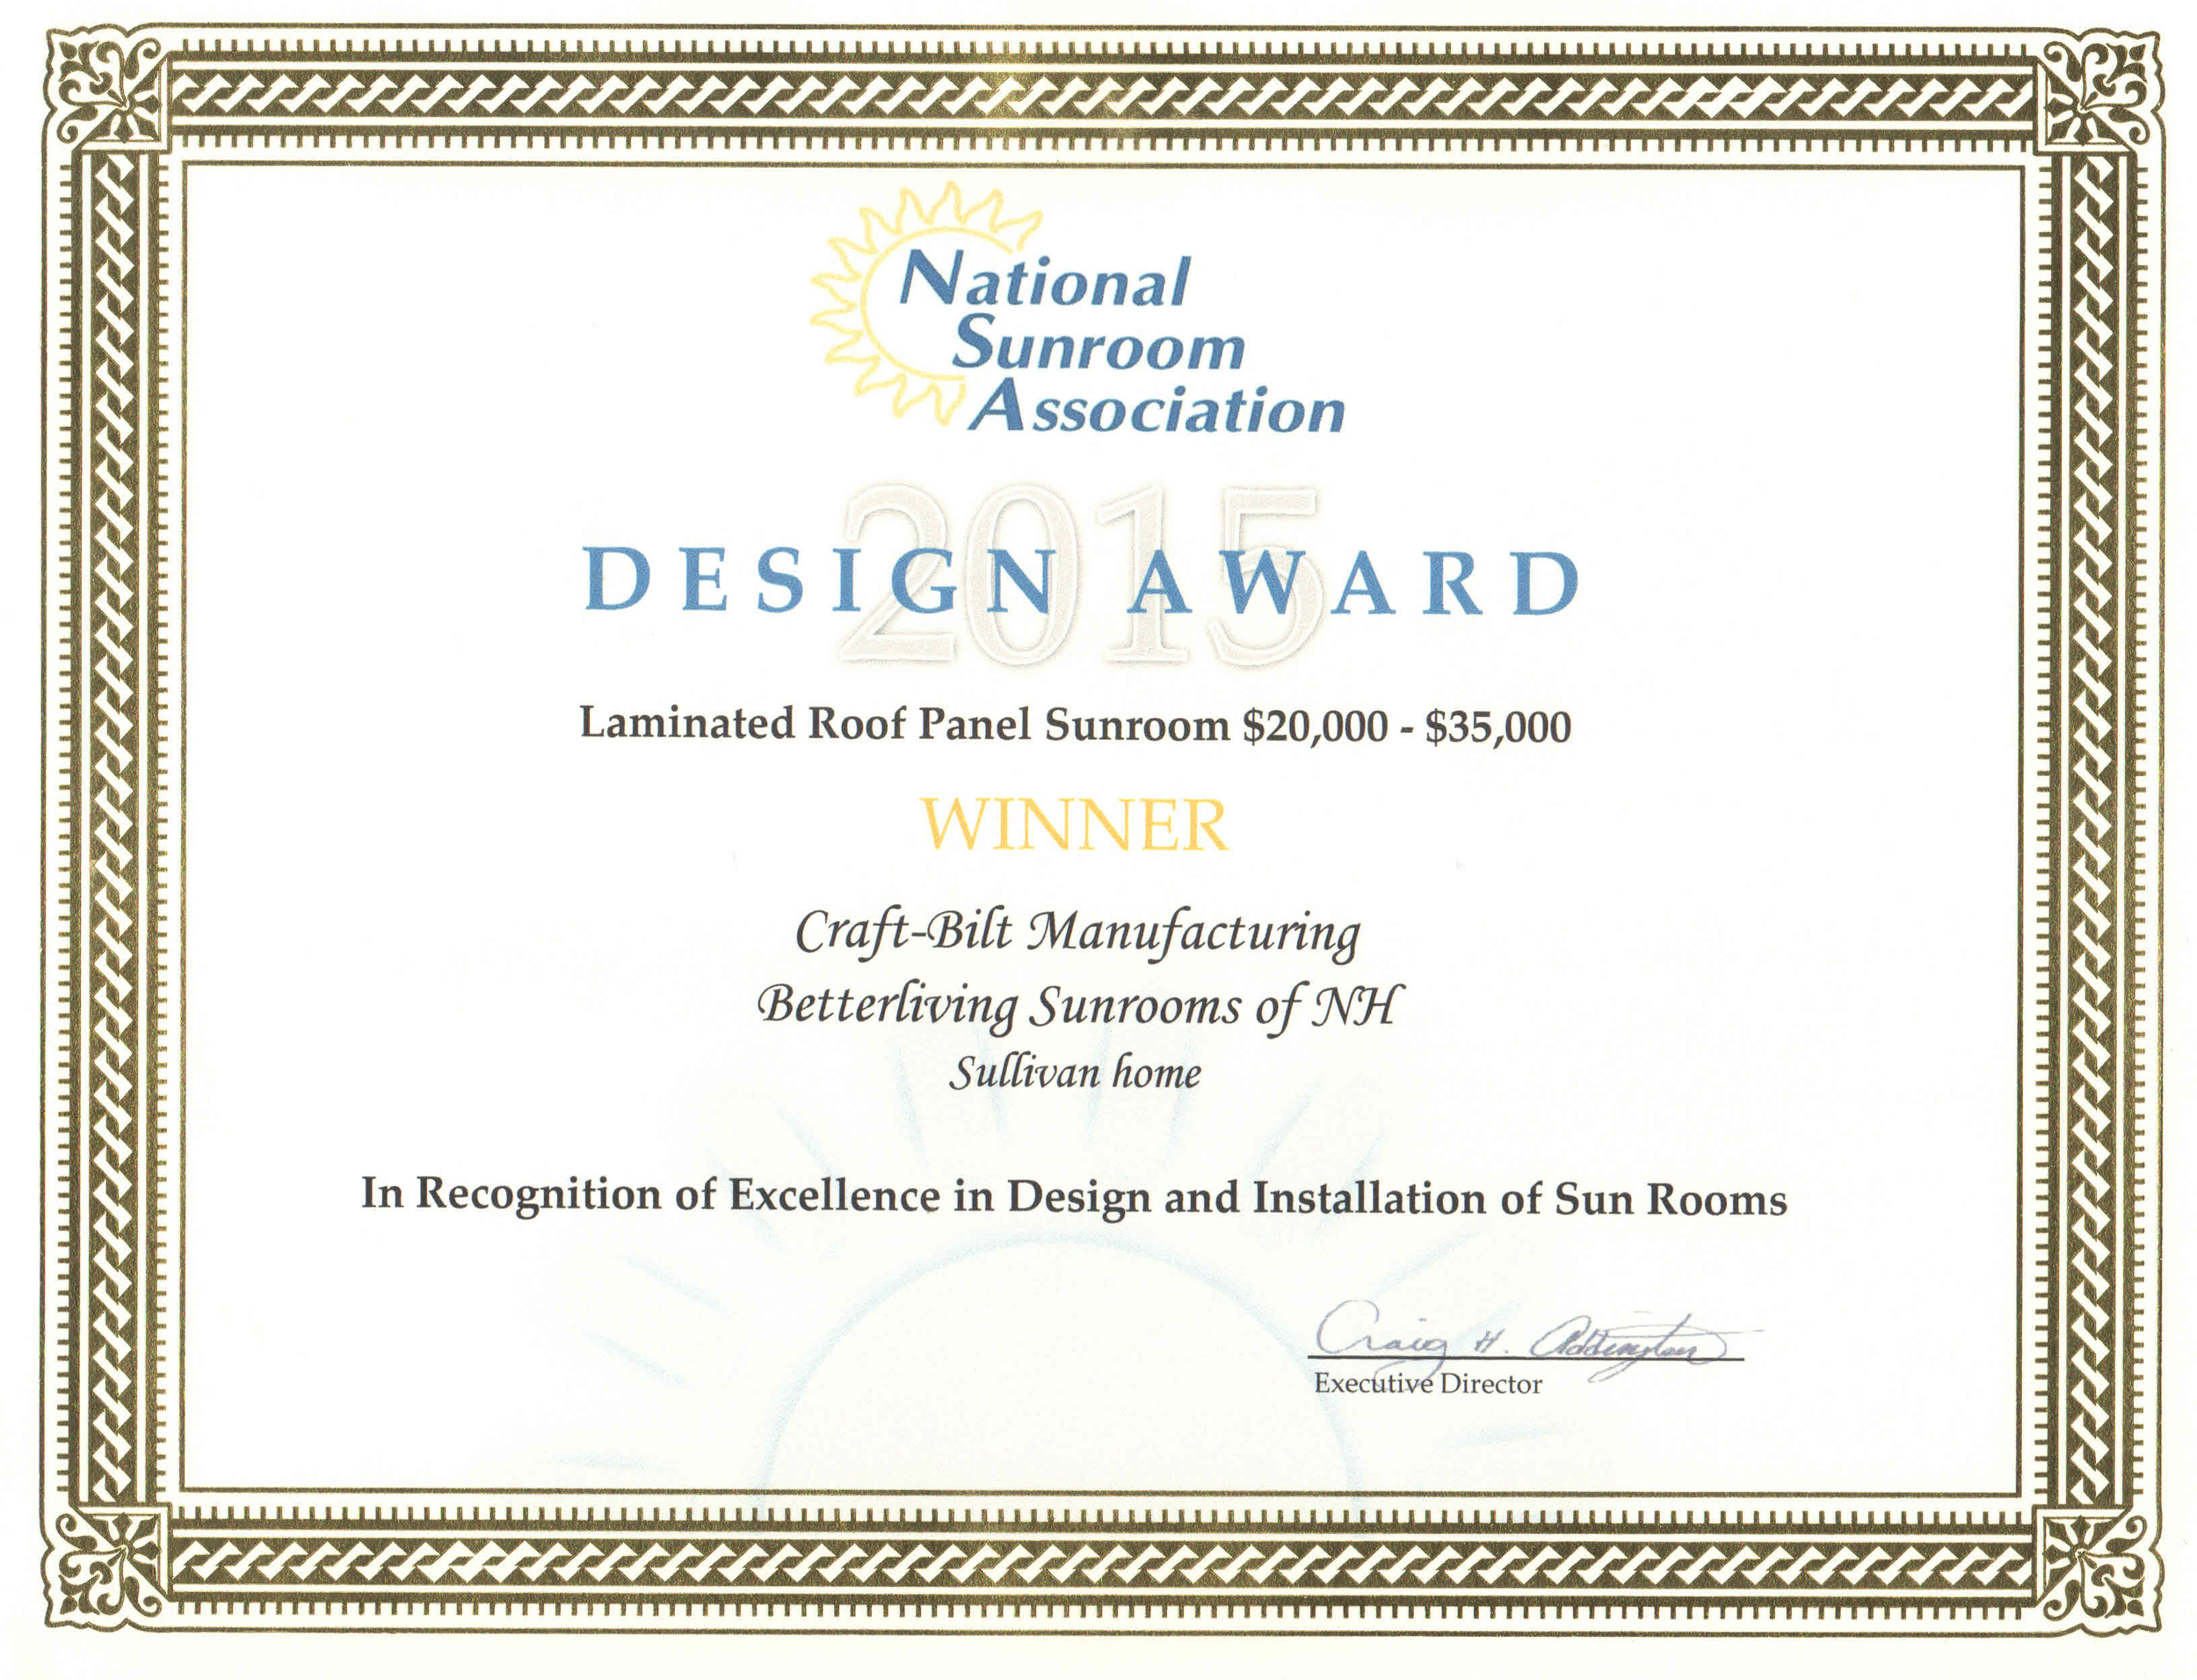 National Sunroom Association Award - Excellence in Design and Installation of Sun Rooms